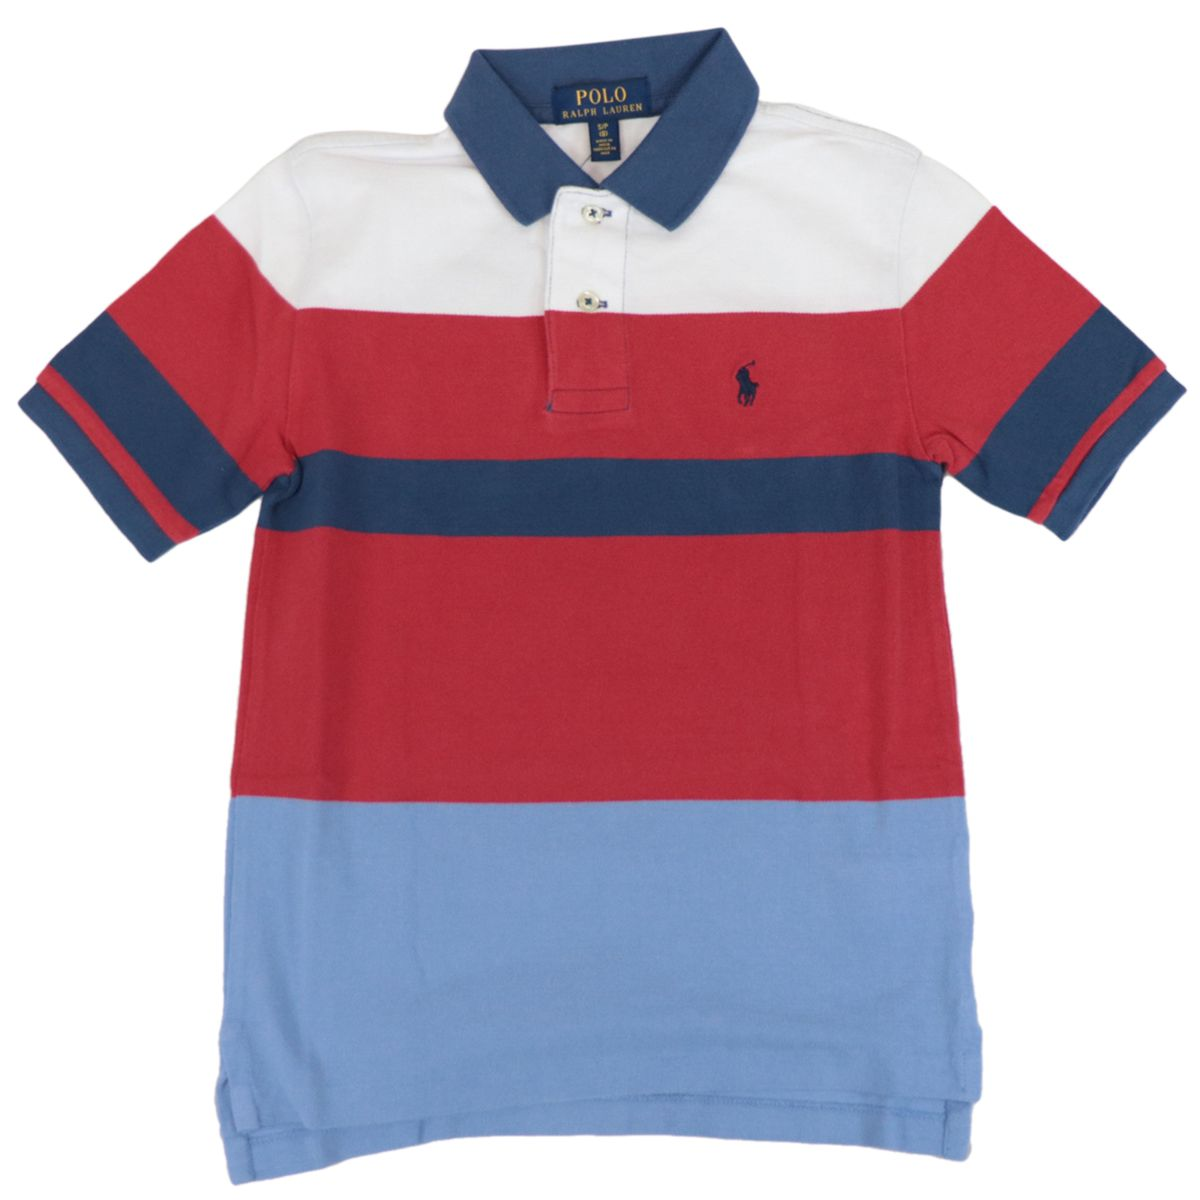 Multicolor striped cotton polo shirt with logo Red Polo Ralph Lauren